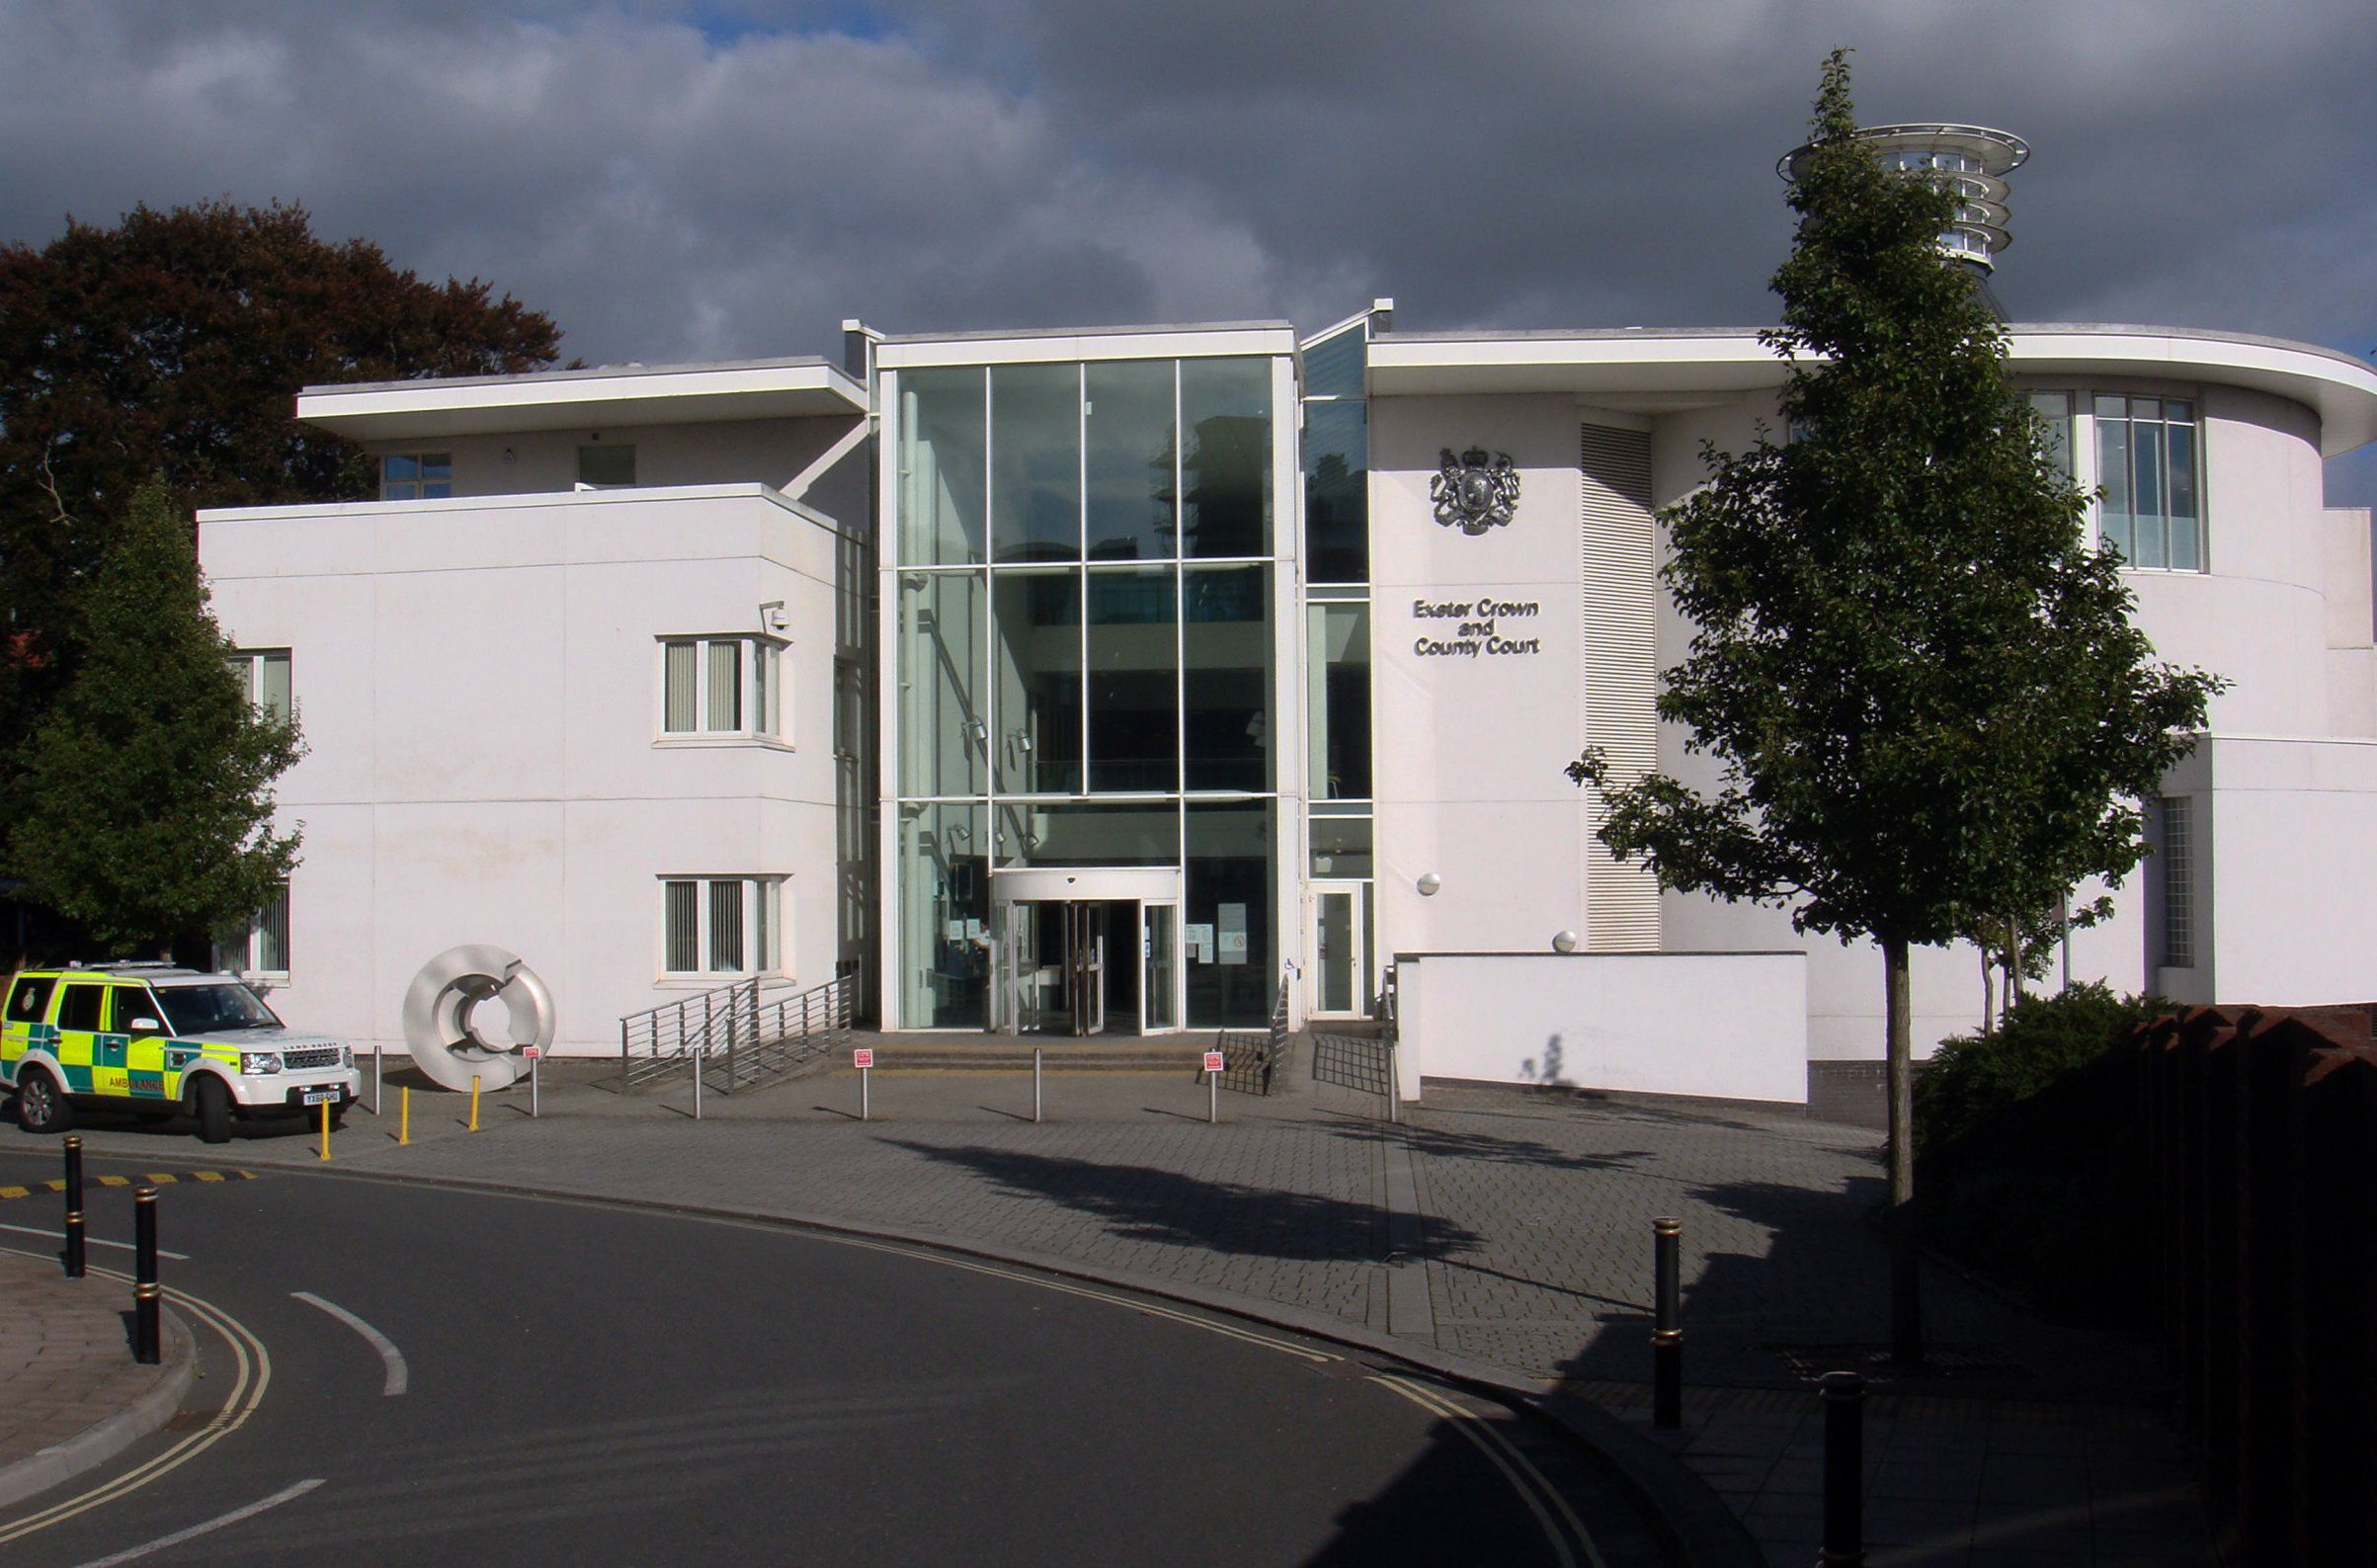 Mandatory Credit: Photo by Barry Gomer/REX/Shutterstock (1886803a)nExeter Crown and County Court, Exeter, England, BritainnExeter Crown and County Court, Exeter, Britain - Sep 2012nn